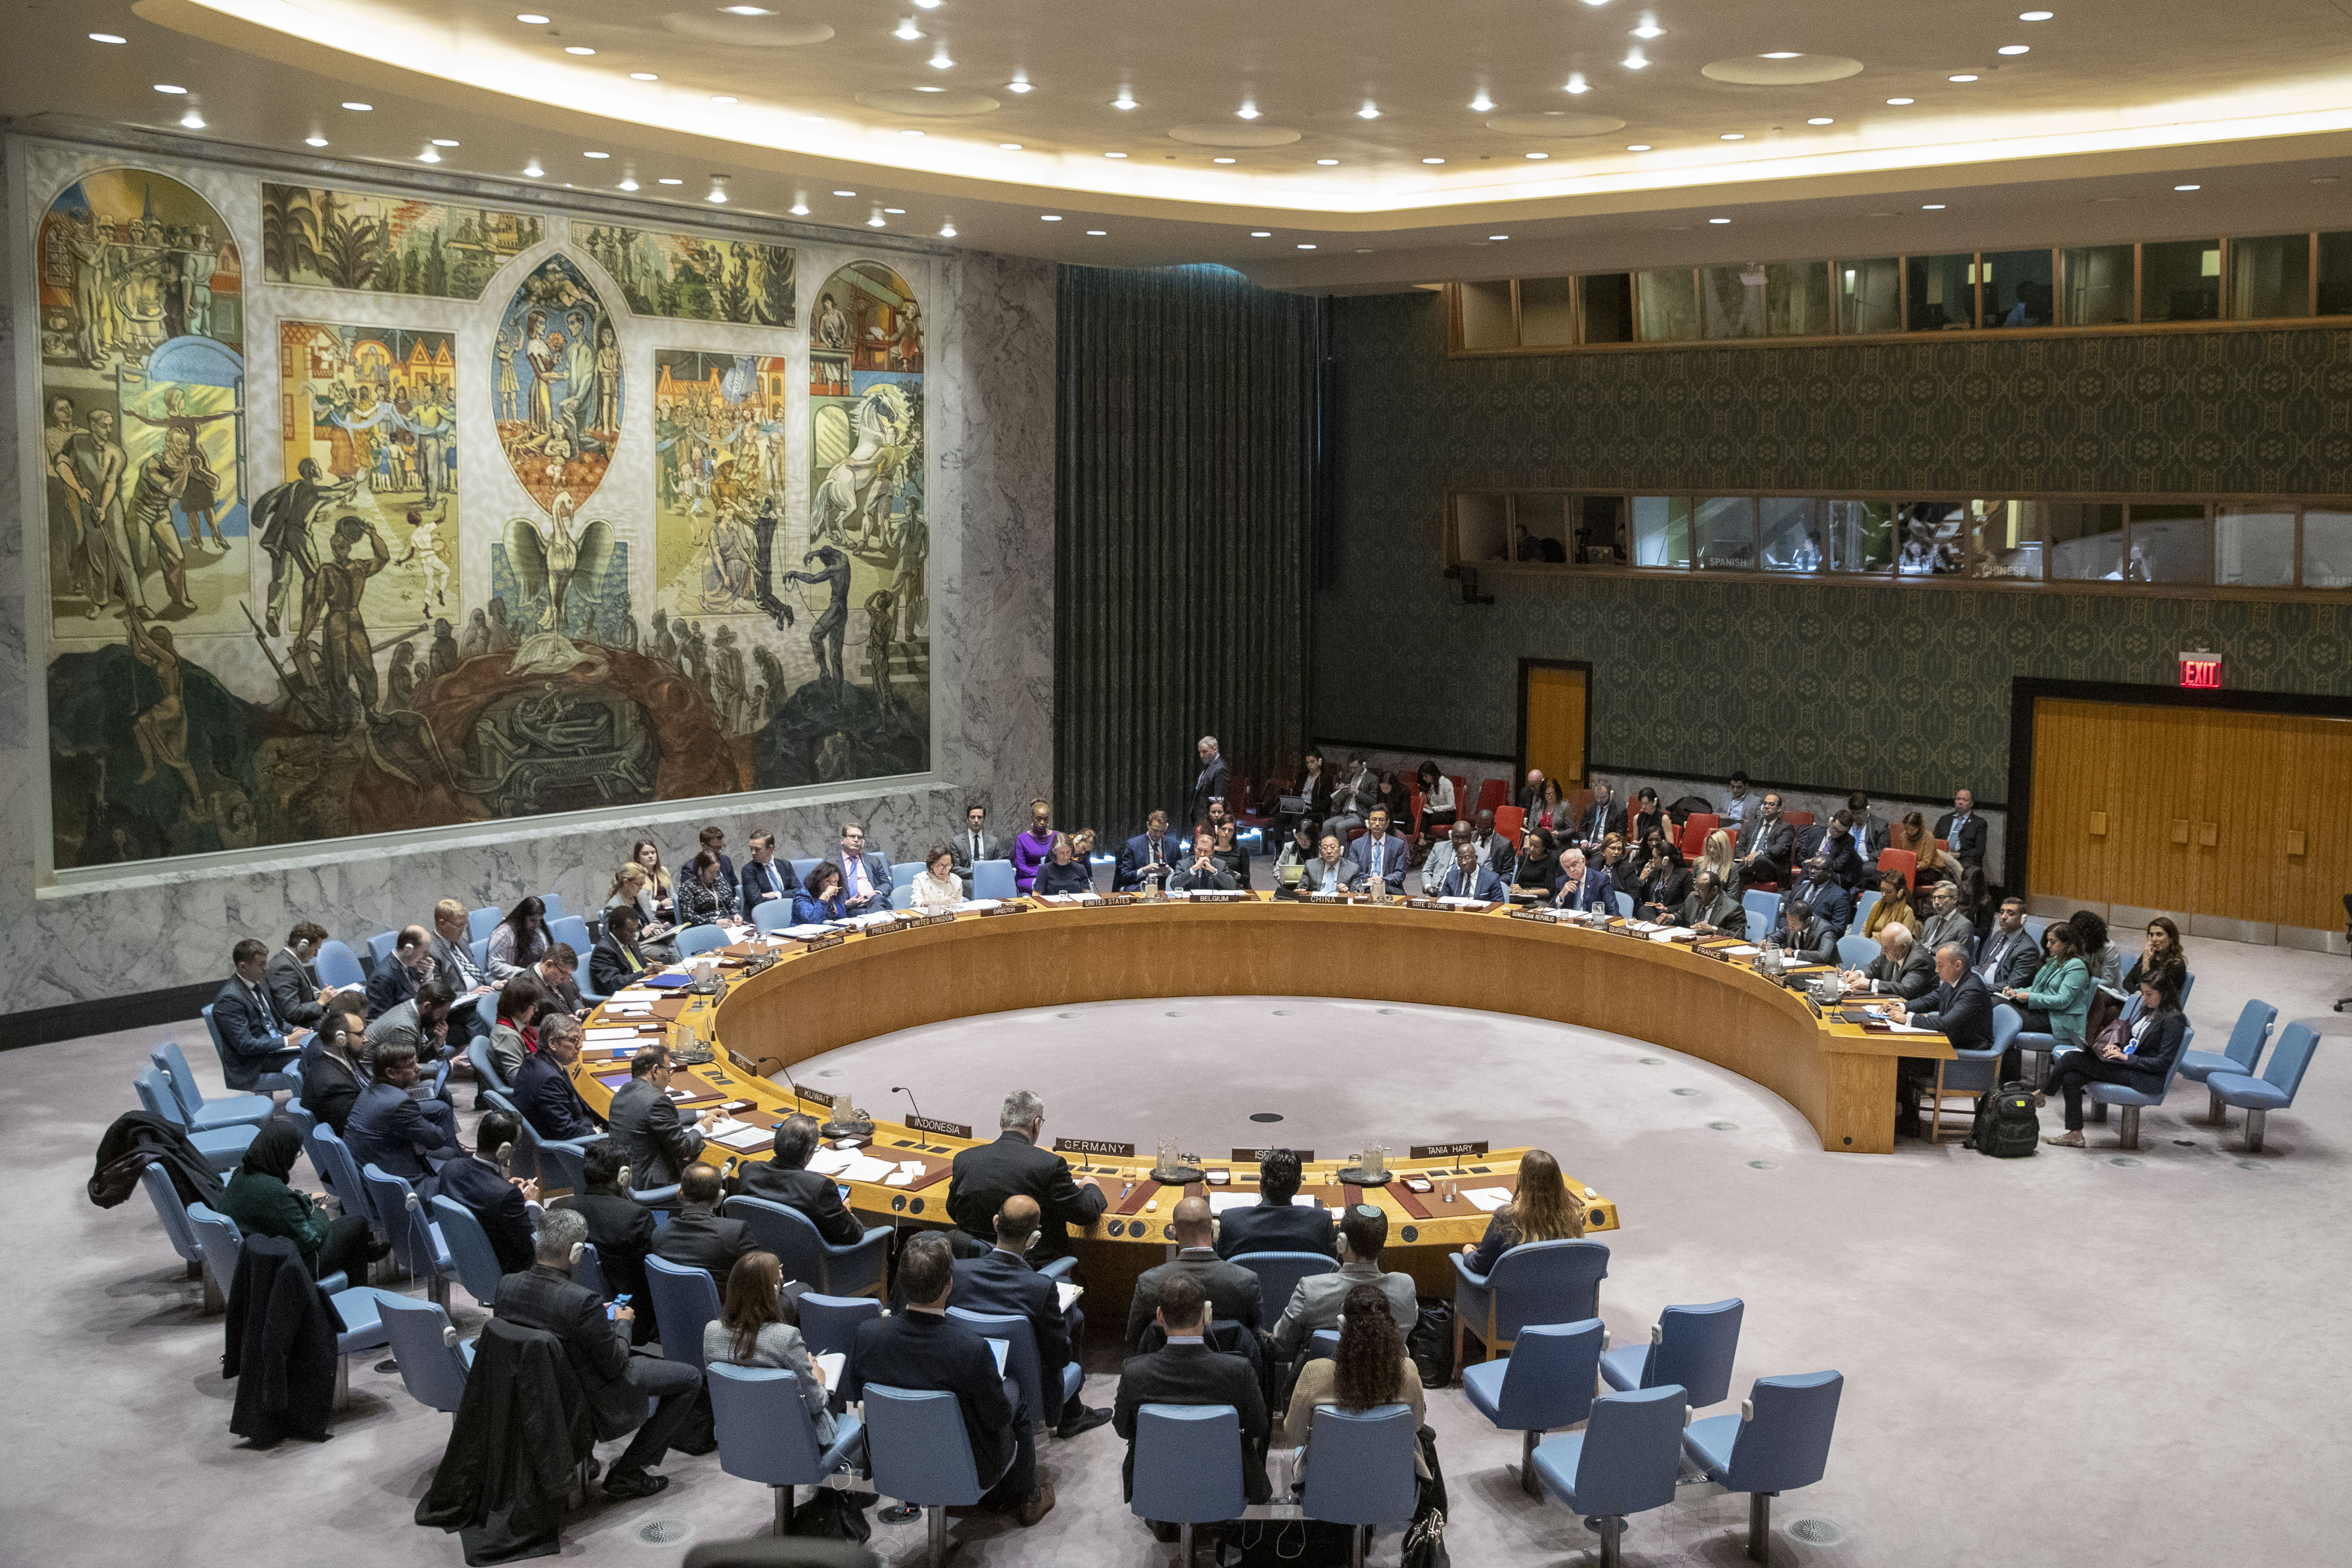 The UN Security Council holds a meeting on the Middle East, including the Palestinian question, Wednesday, Nov. 20, 2019 at United Nations headquarters.